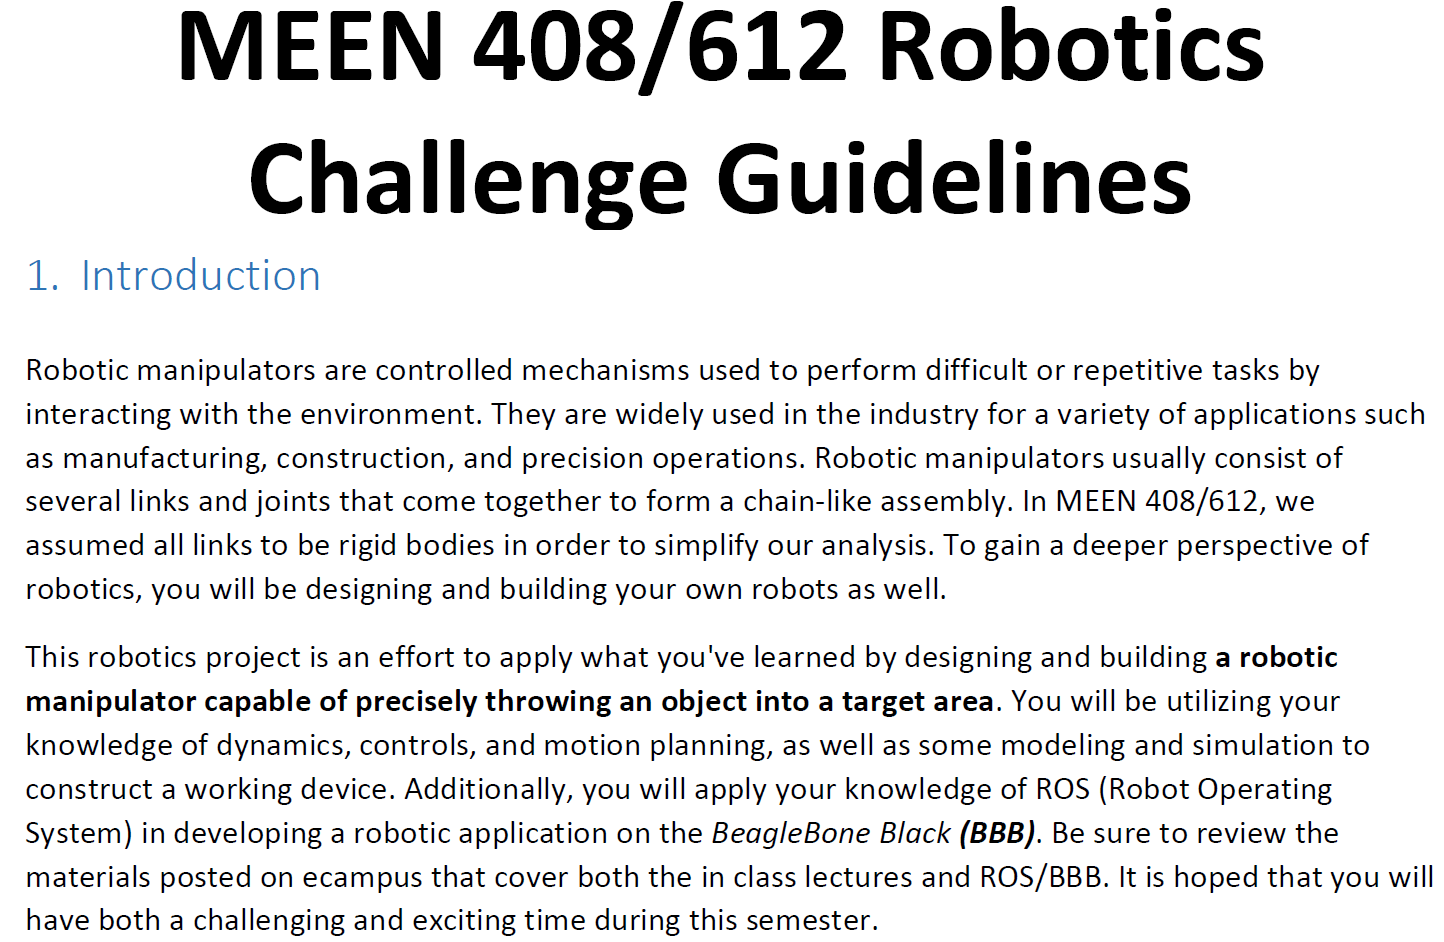 meen612_project1.png